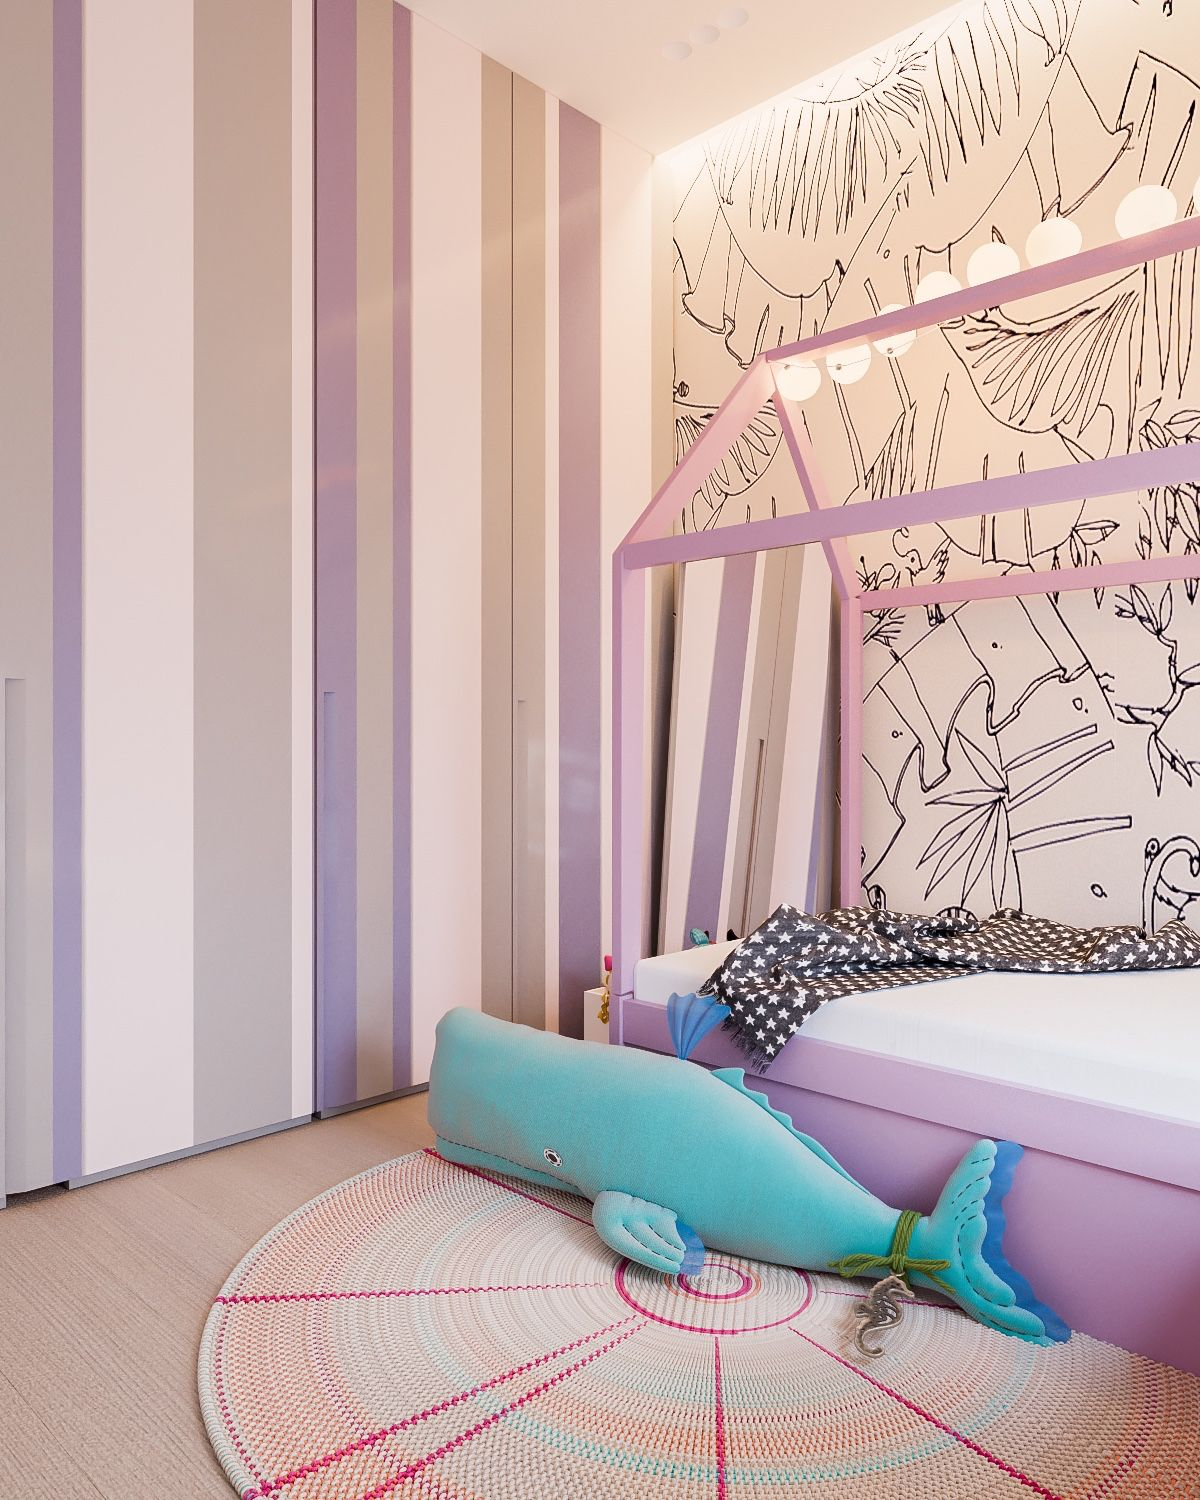 Cute Pink And Lavender Kids Bedroom - A minimalist family home with a bright bedroom for the kids